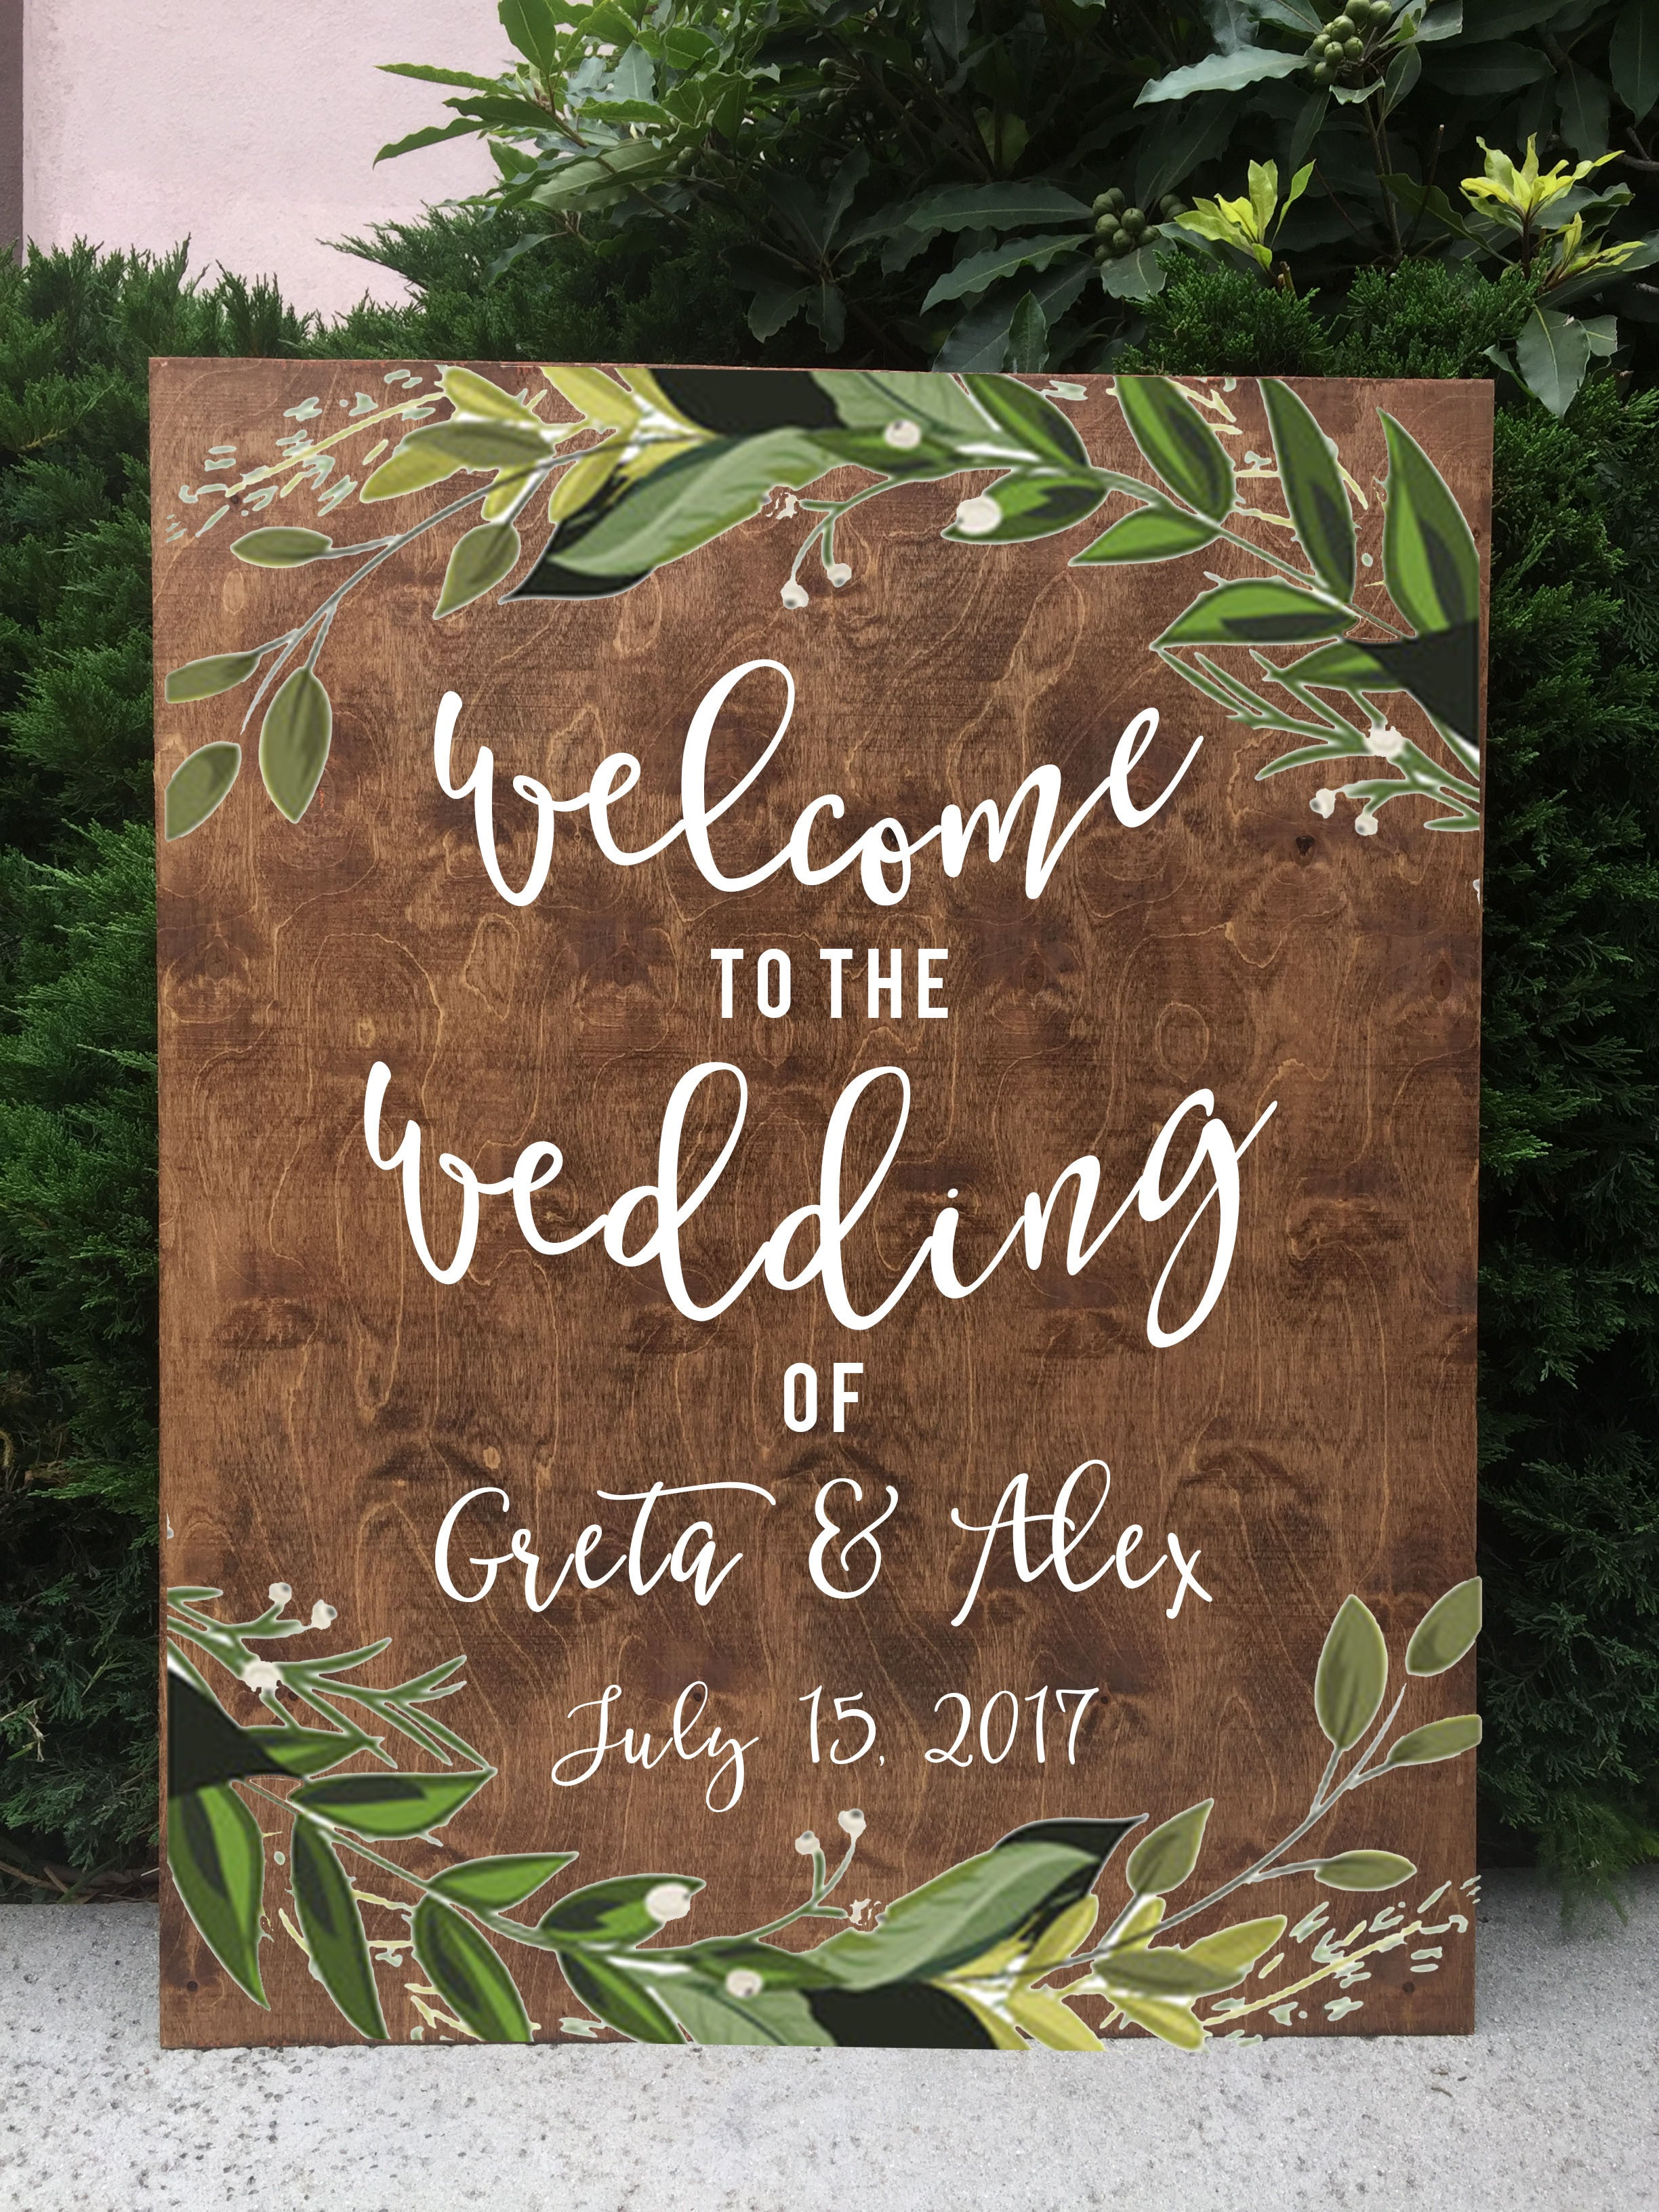 Welcome wedding sign rustic wedding framed chalkboard wedding welcome wedding sign rustic wedding framed chalkboard wedding greenery easel chalkboard sign heart junglespirit Choice Image